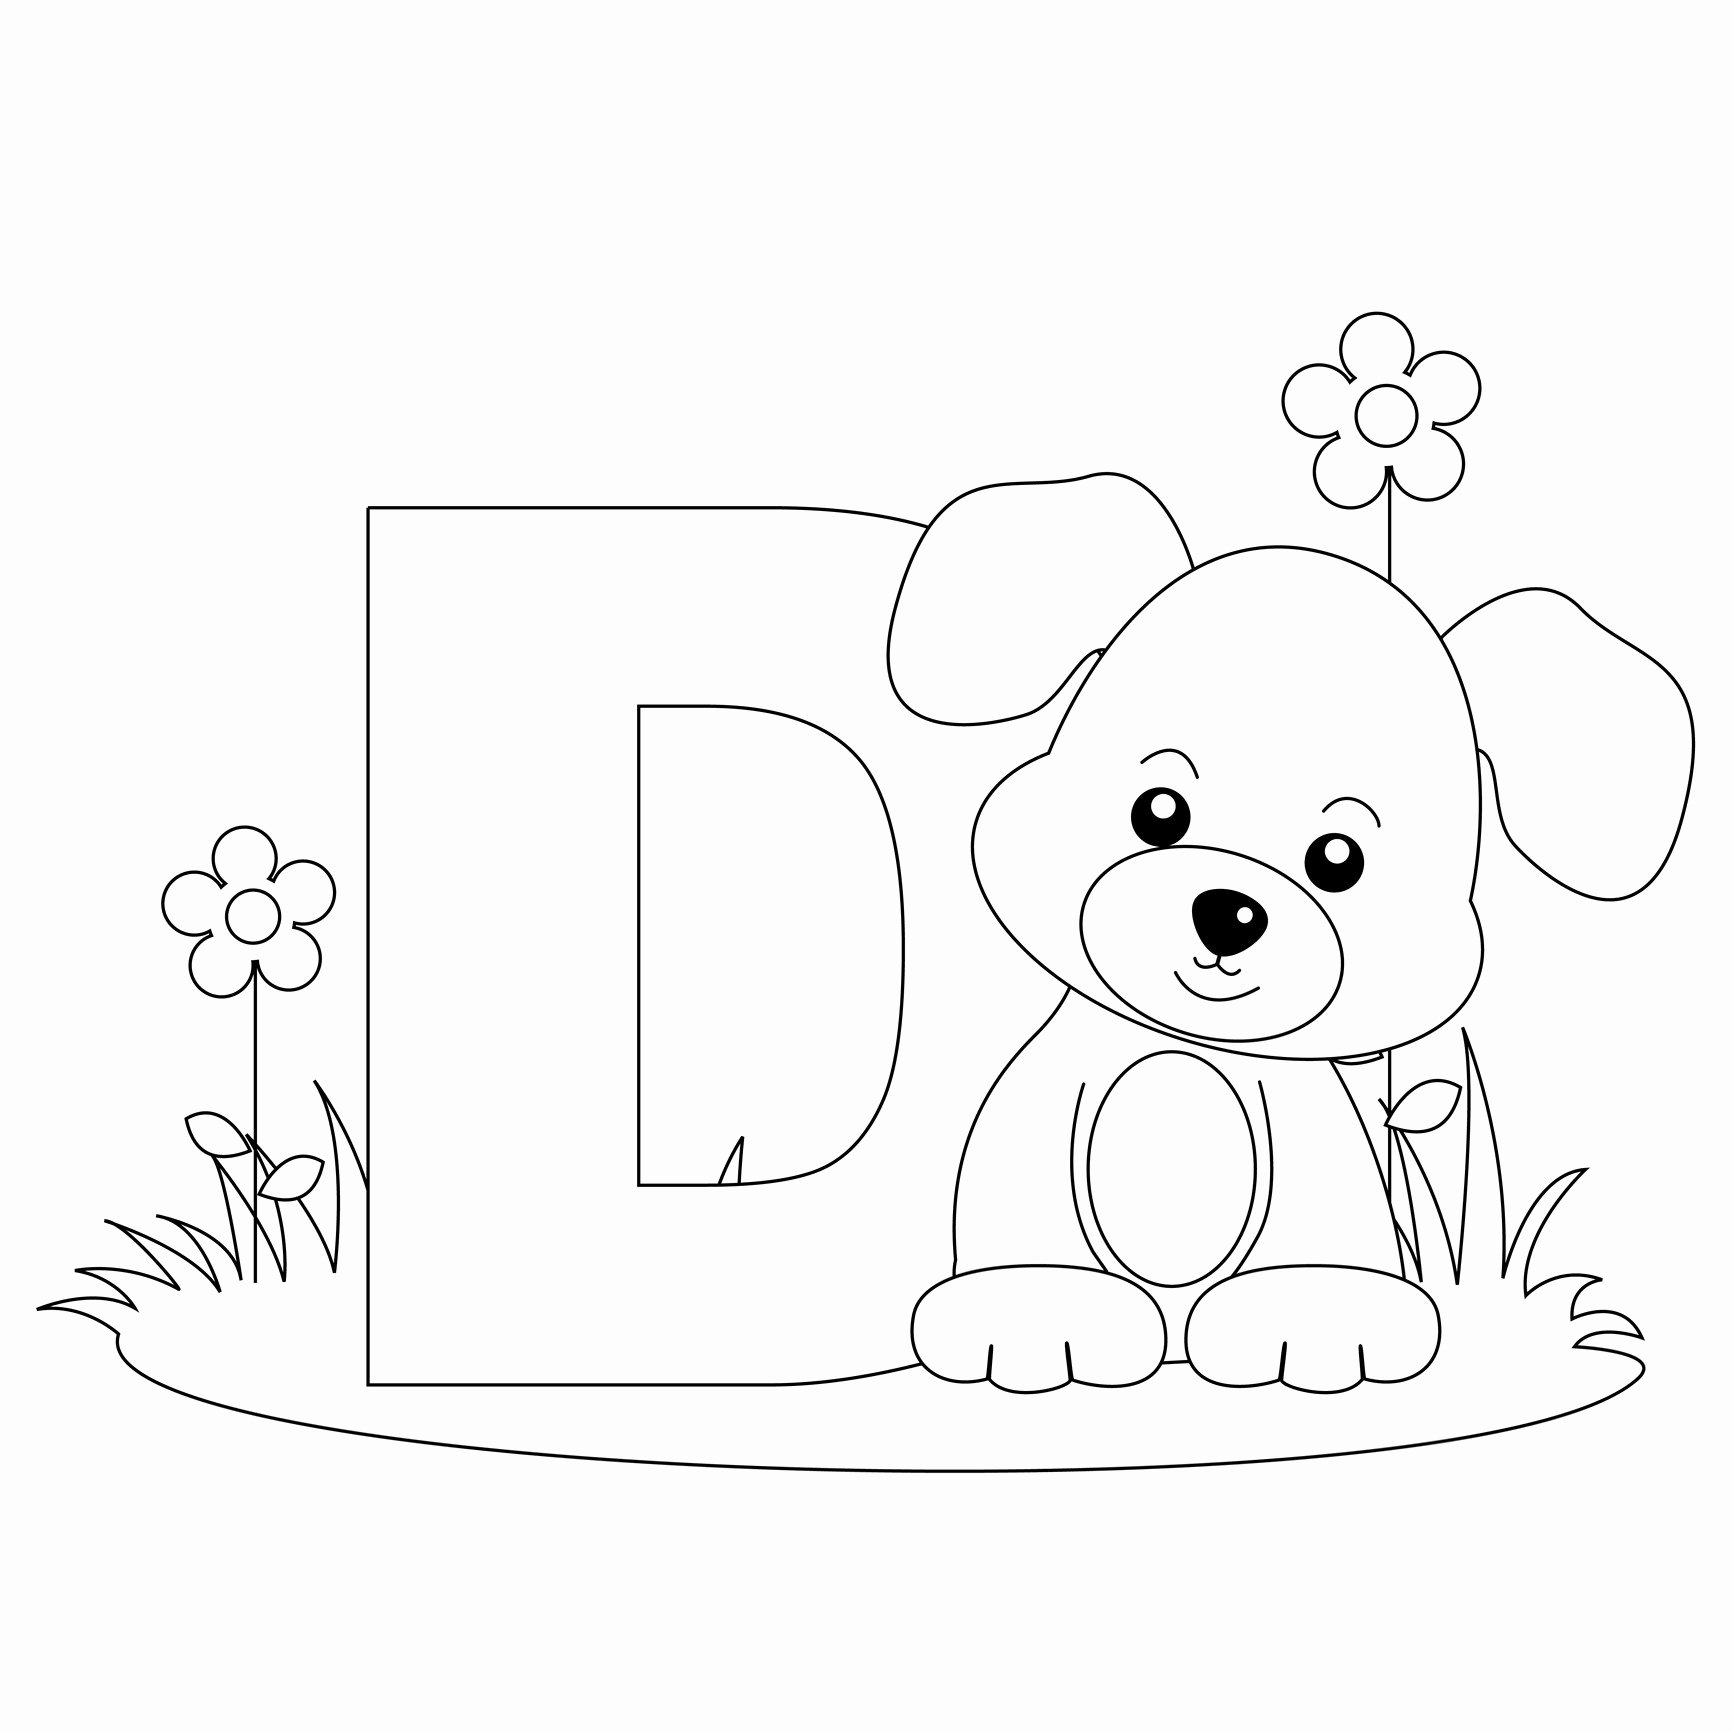 Printable Alphabet Letters Free Luxury Free Printable Alphabet Coloring Pages for Kids Best